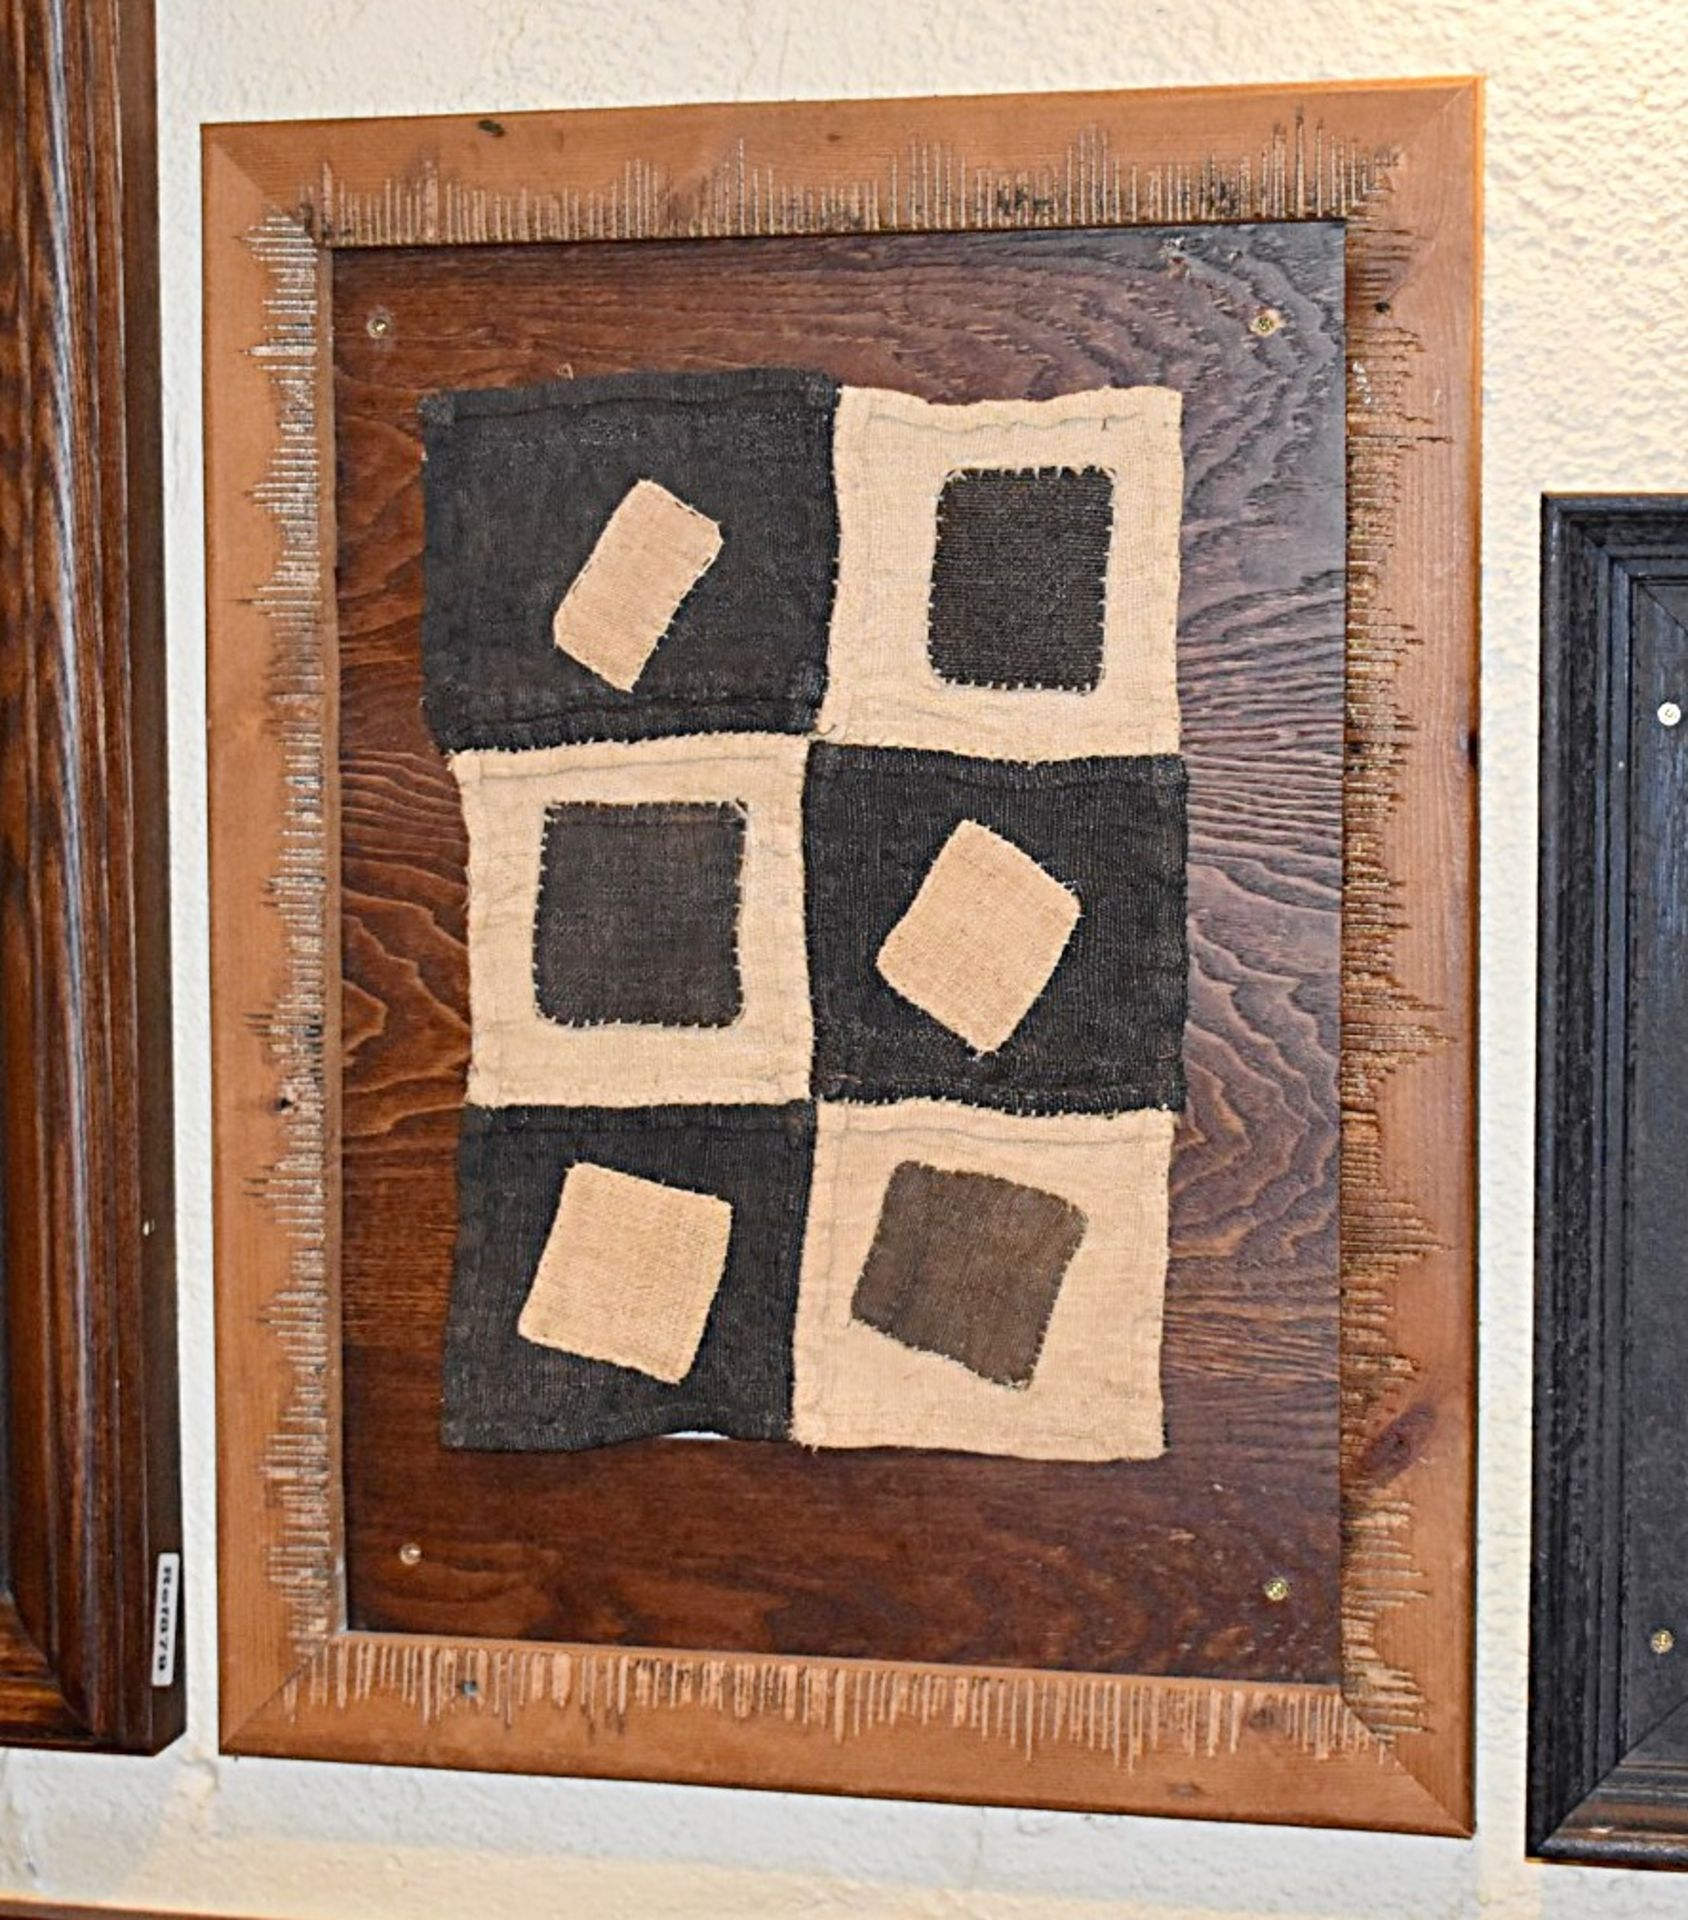 Lot 9700 - 10 x Wall Pictures With Fabric Patch Artwork and Rustic Wooden Frames - Size 48 x 61 cms - Ref